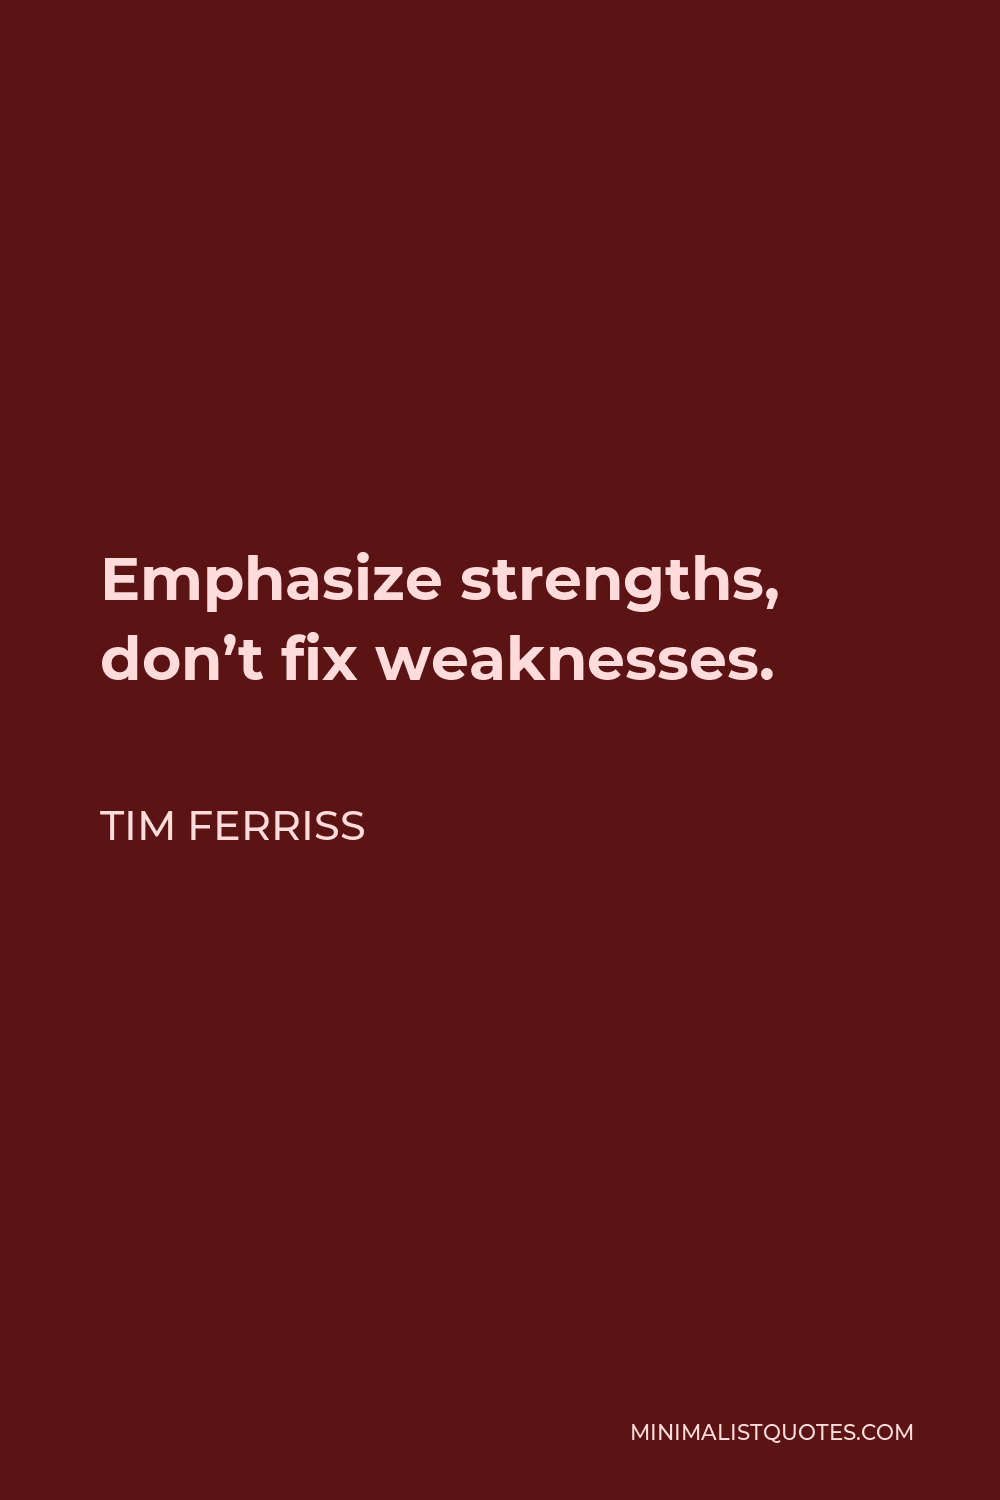 Tim Ferriss Quote - Emphasize strengths, don't fix weaknesses.